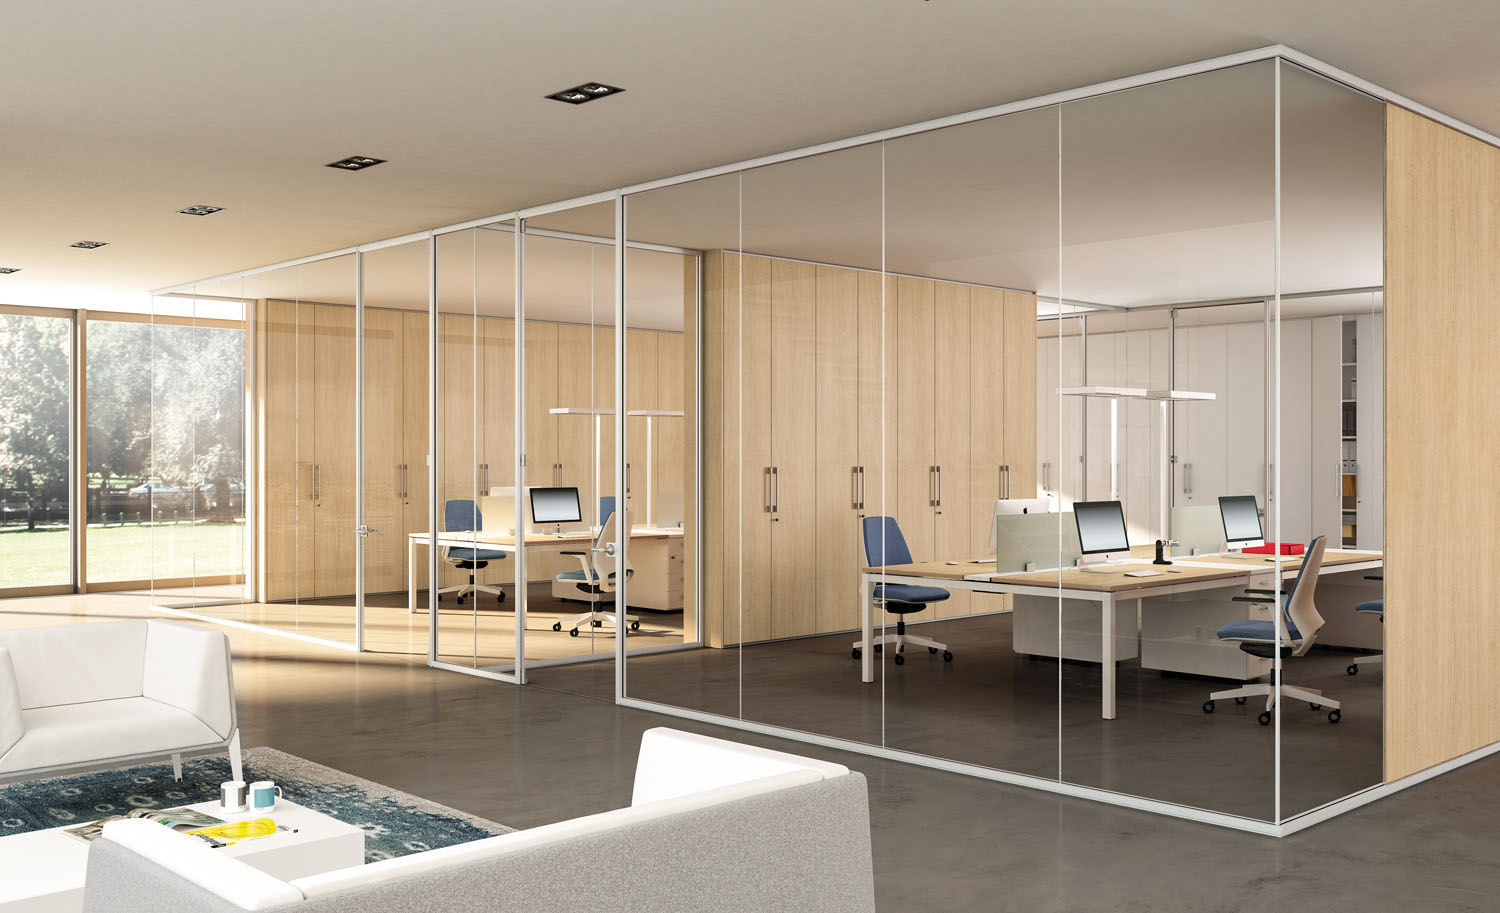 Does your office design adhere to the WELL standard?